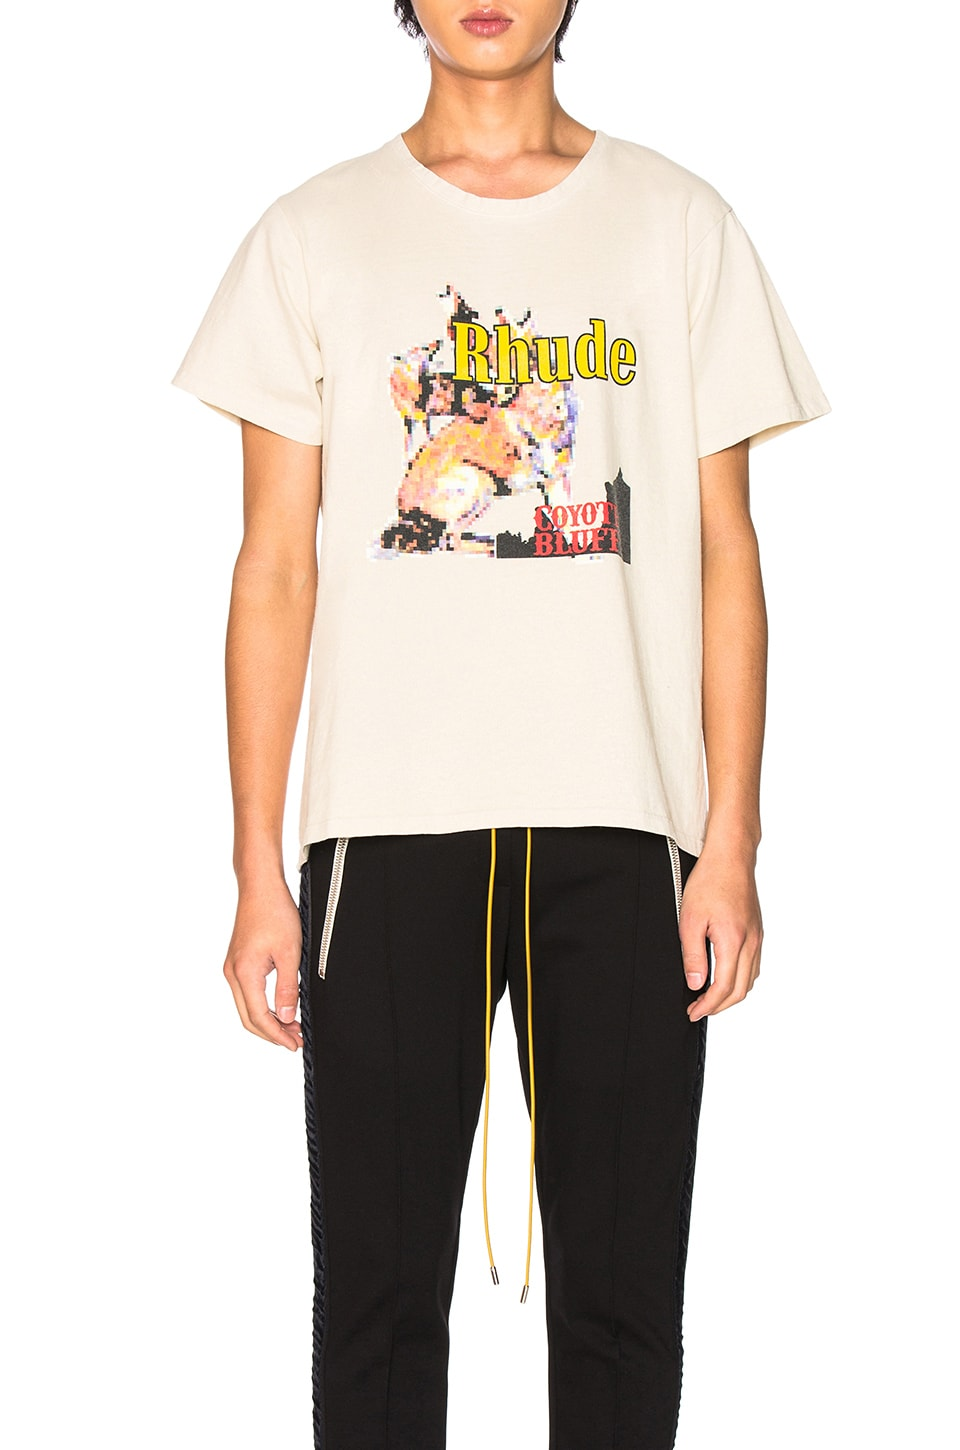 Rhude T-SHIRT COYOTE